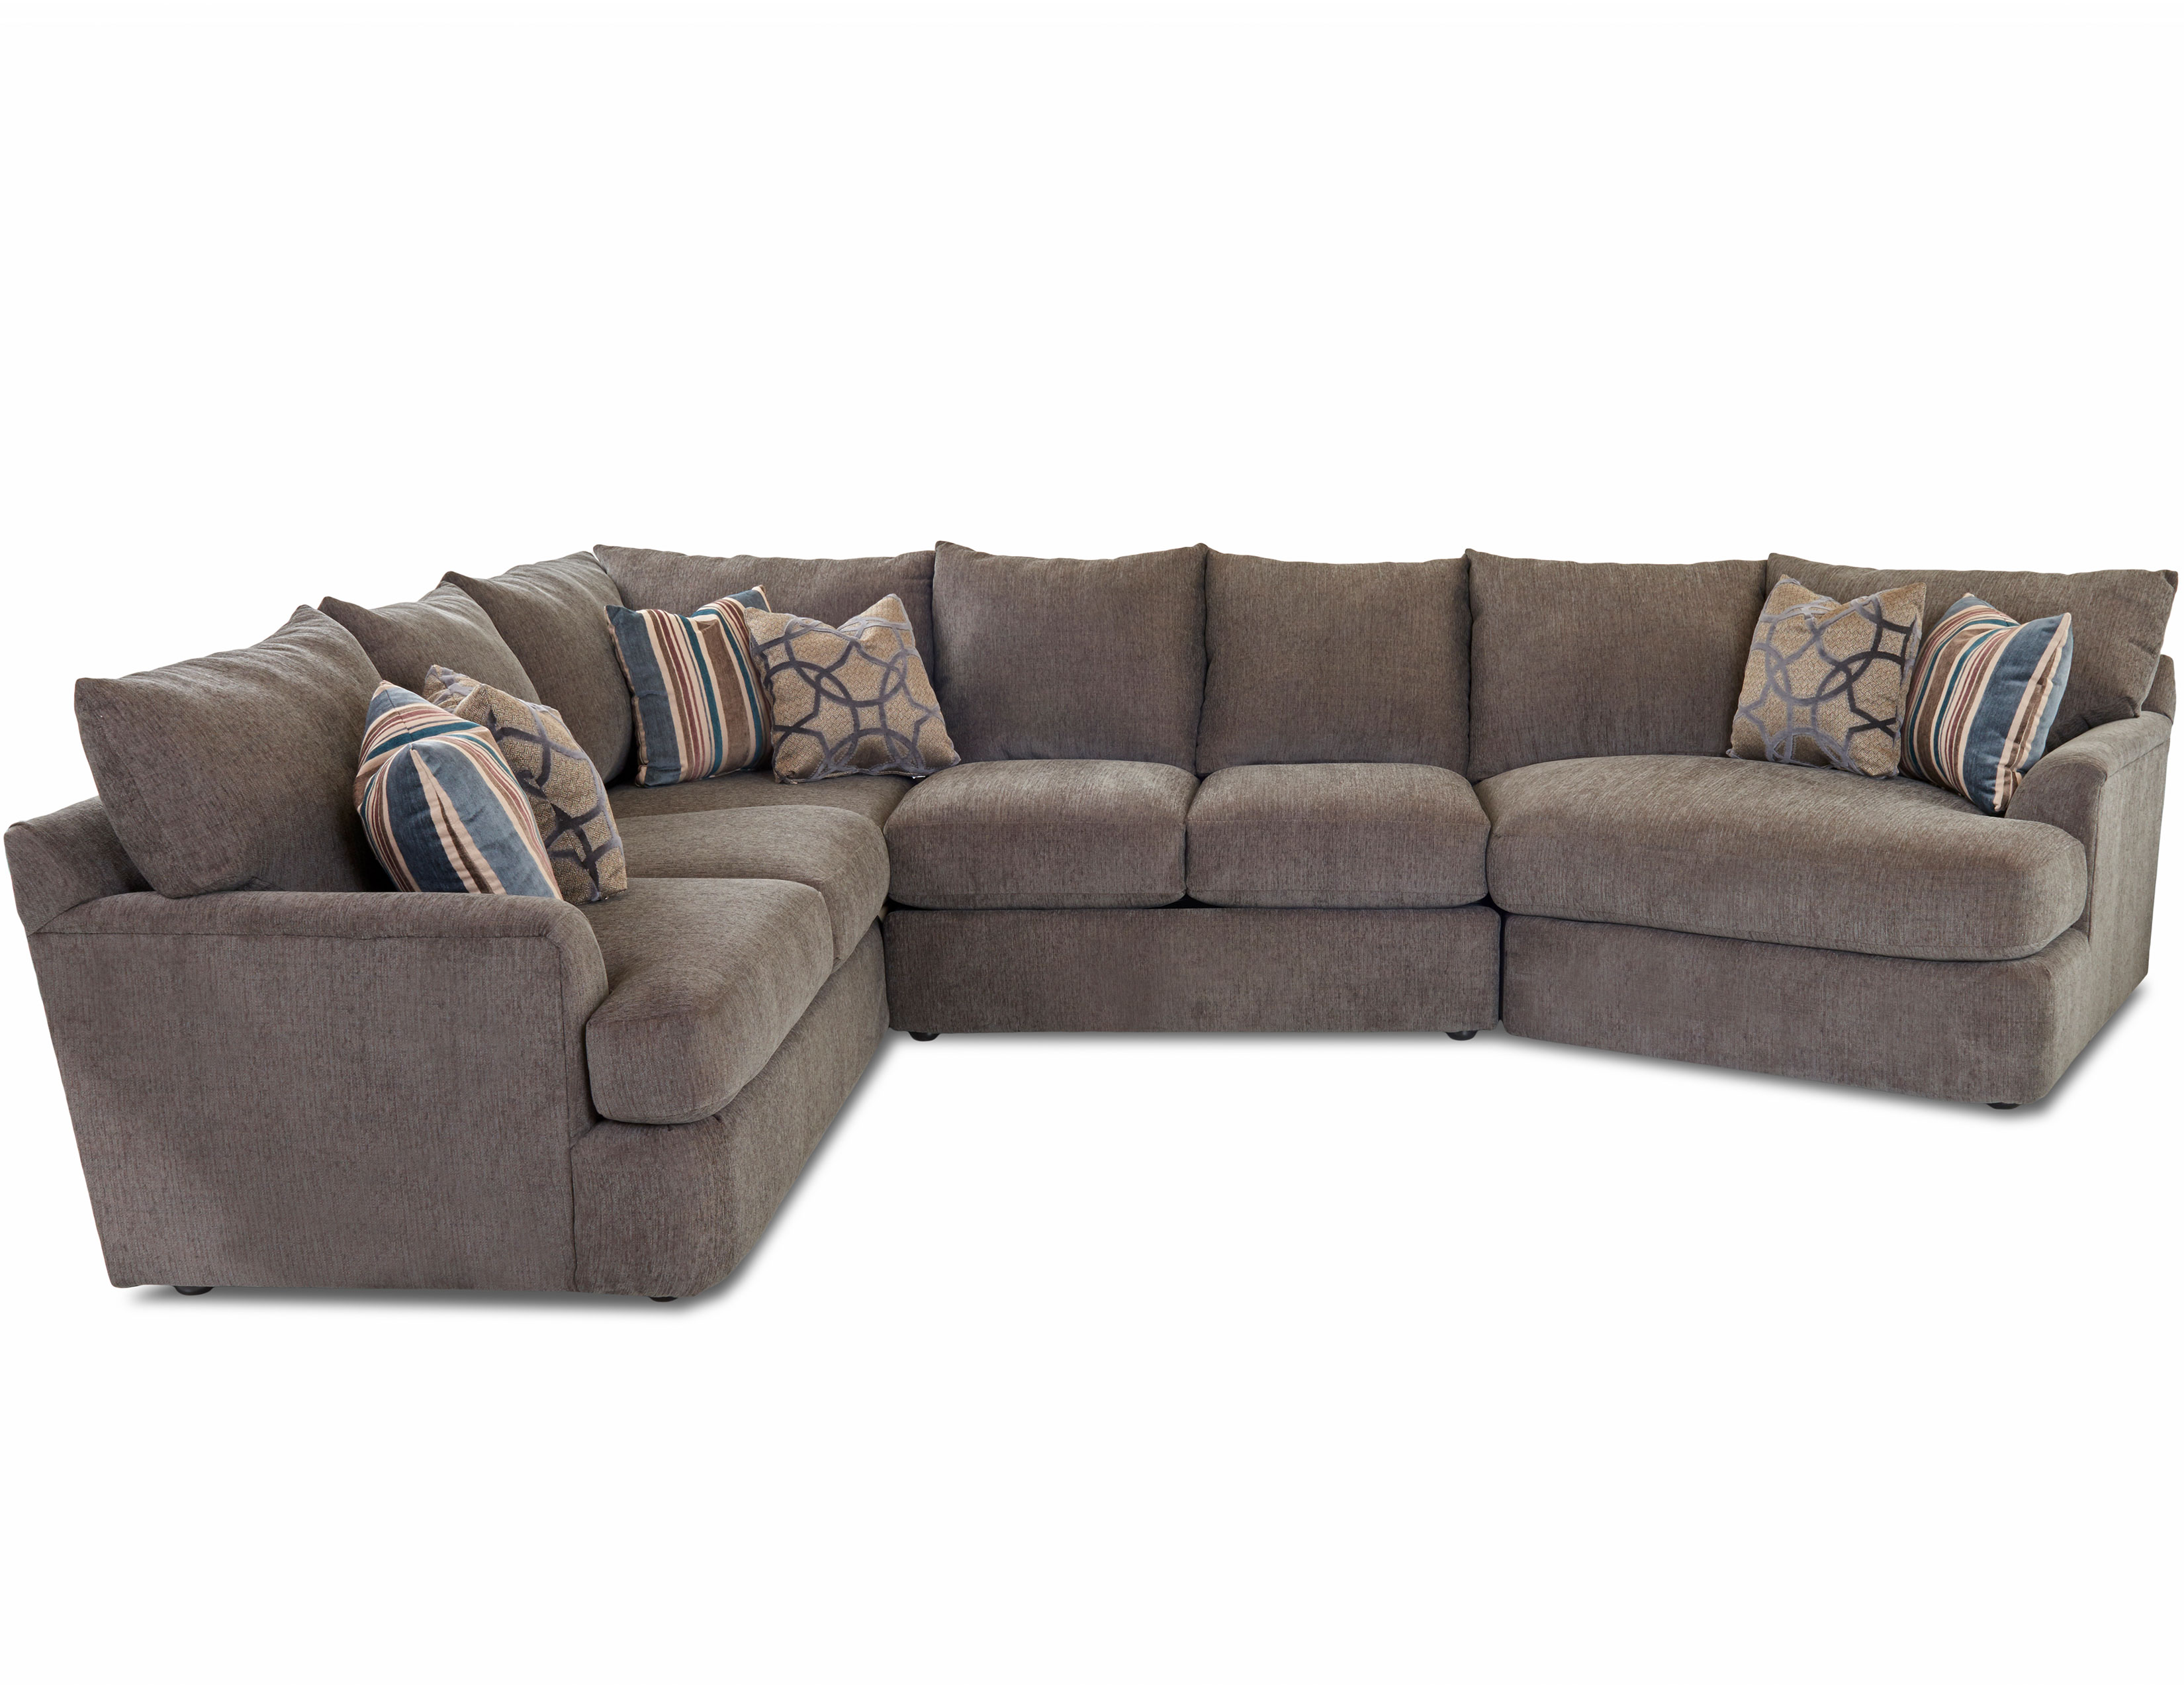 Tremendous Findley K56830 Sectional Hundreds Of Fabrics Sofas And Pabps2019 Chair Design Images Pabps2019Com